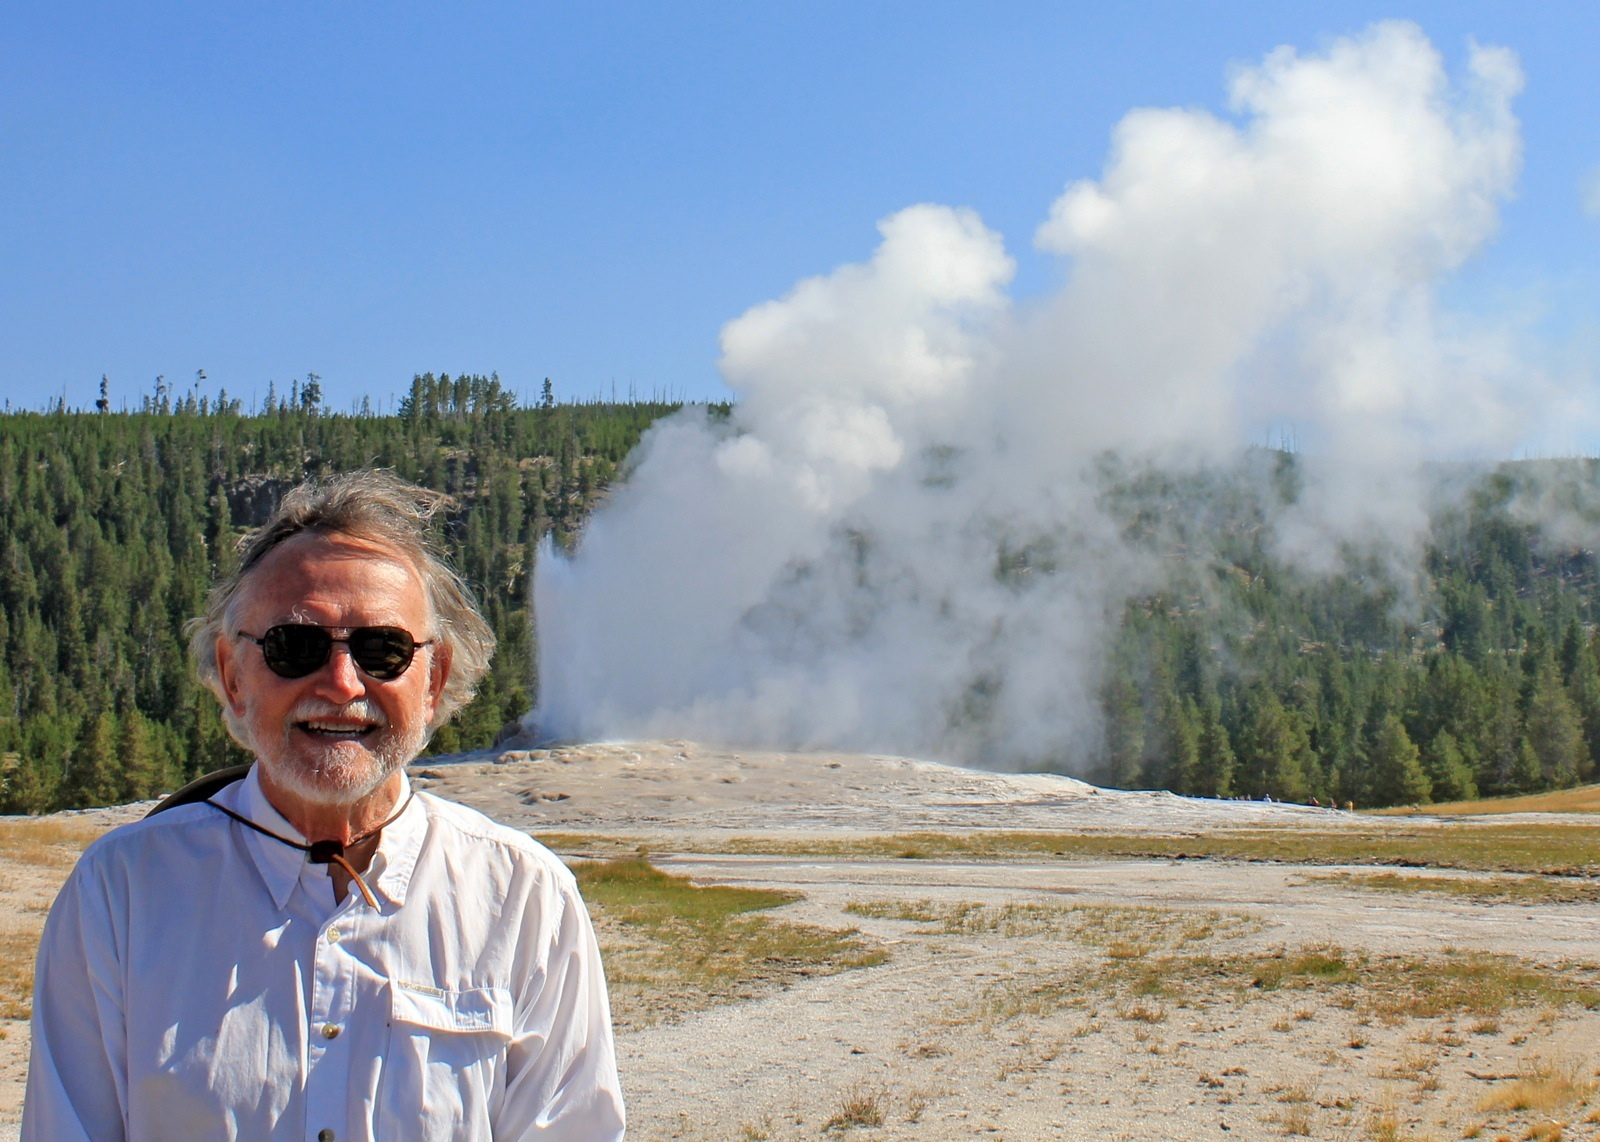 A man poses for a photo in front of a geyser in Yellowstone National Park.